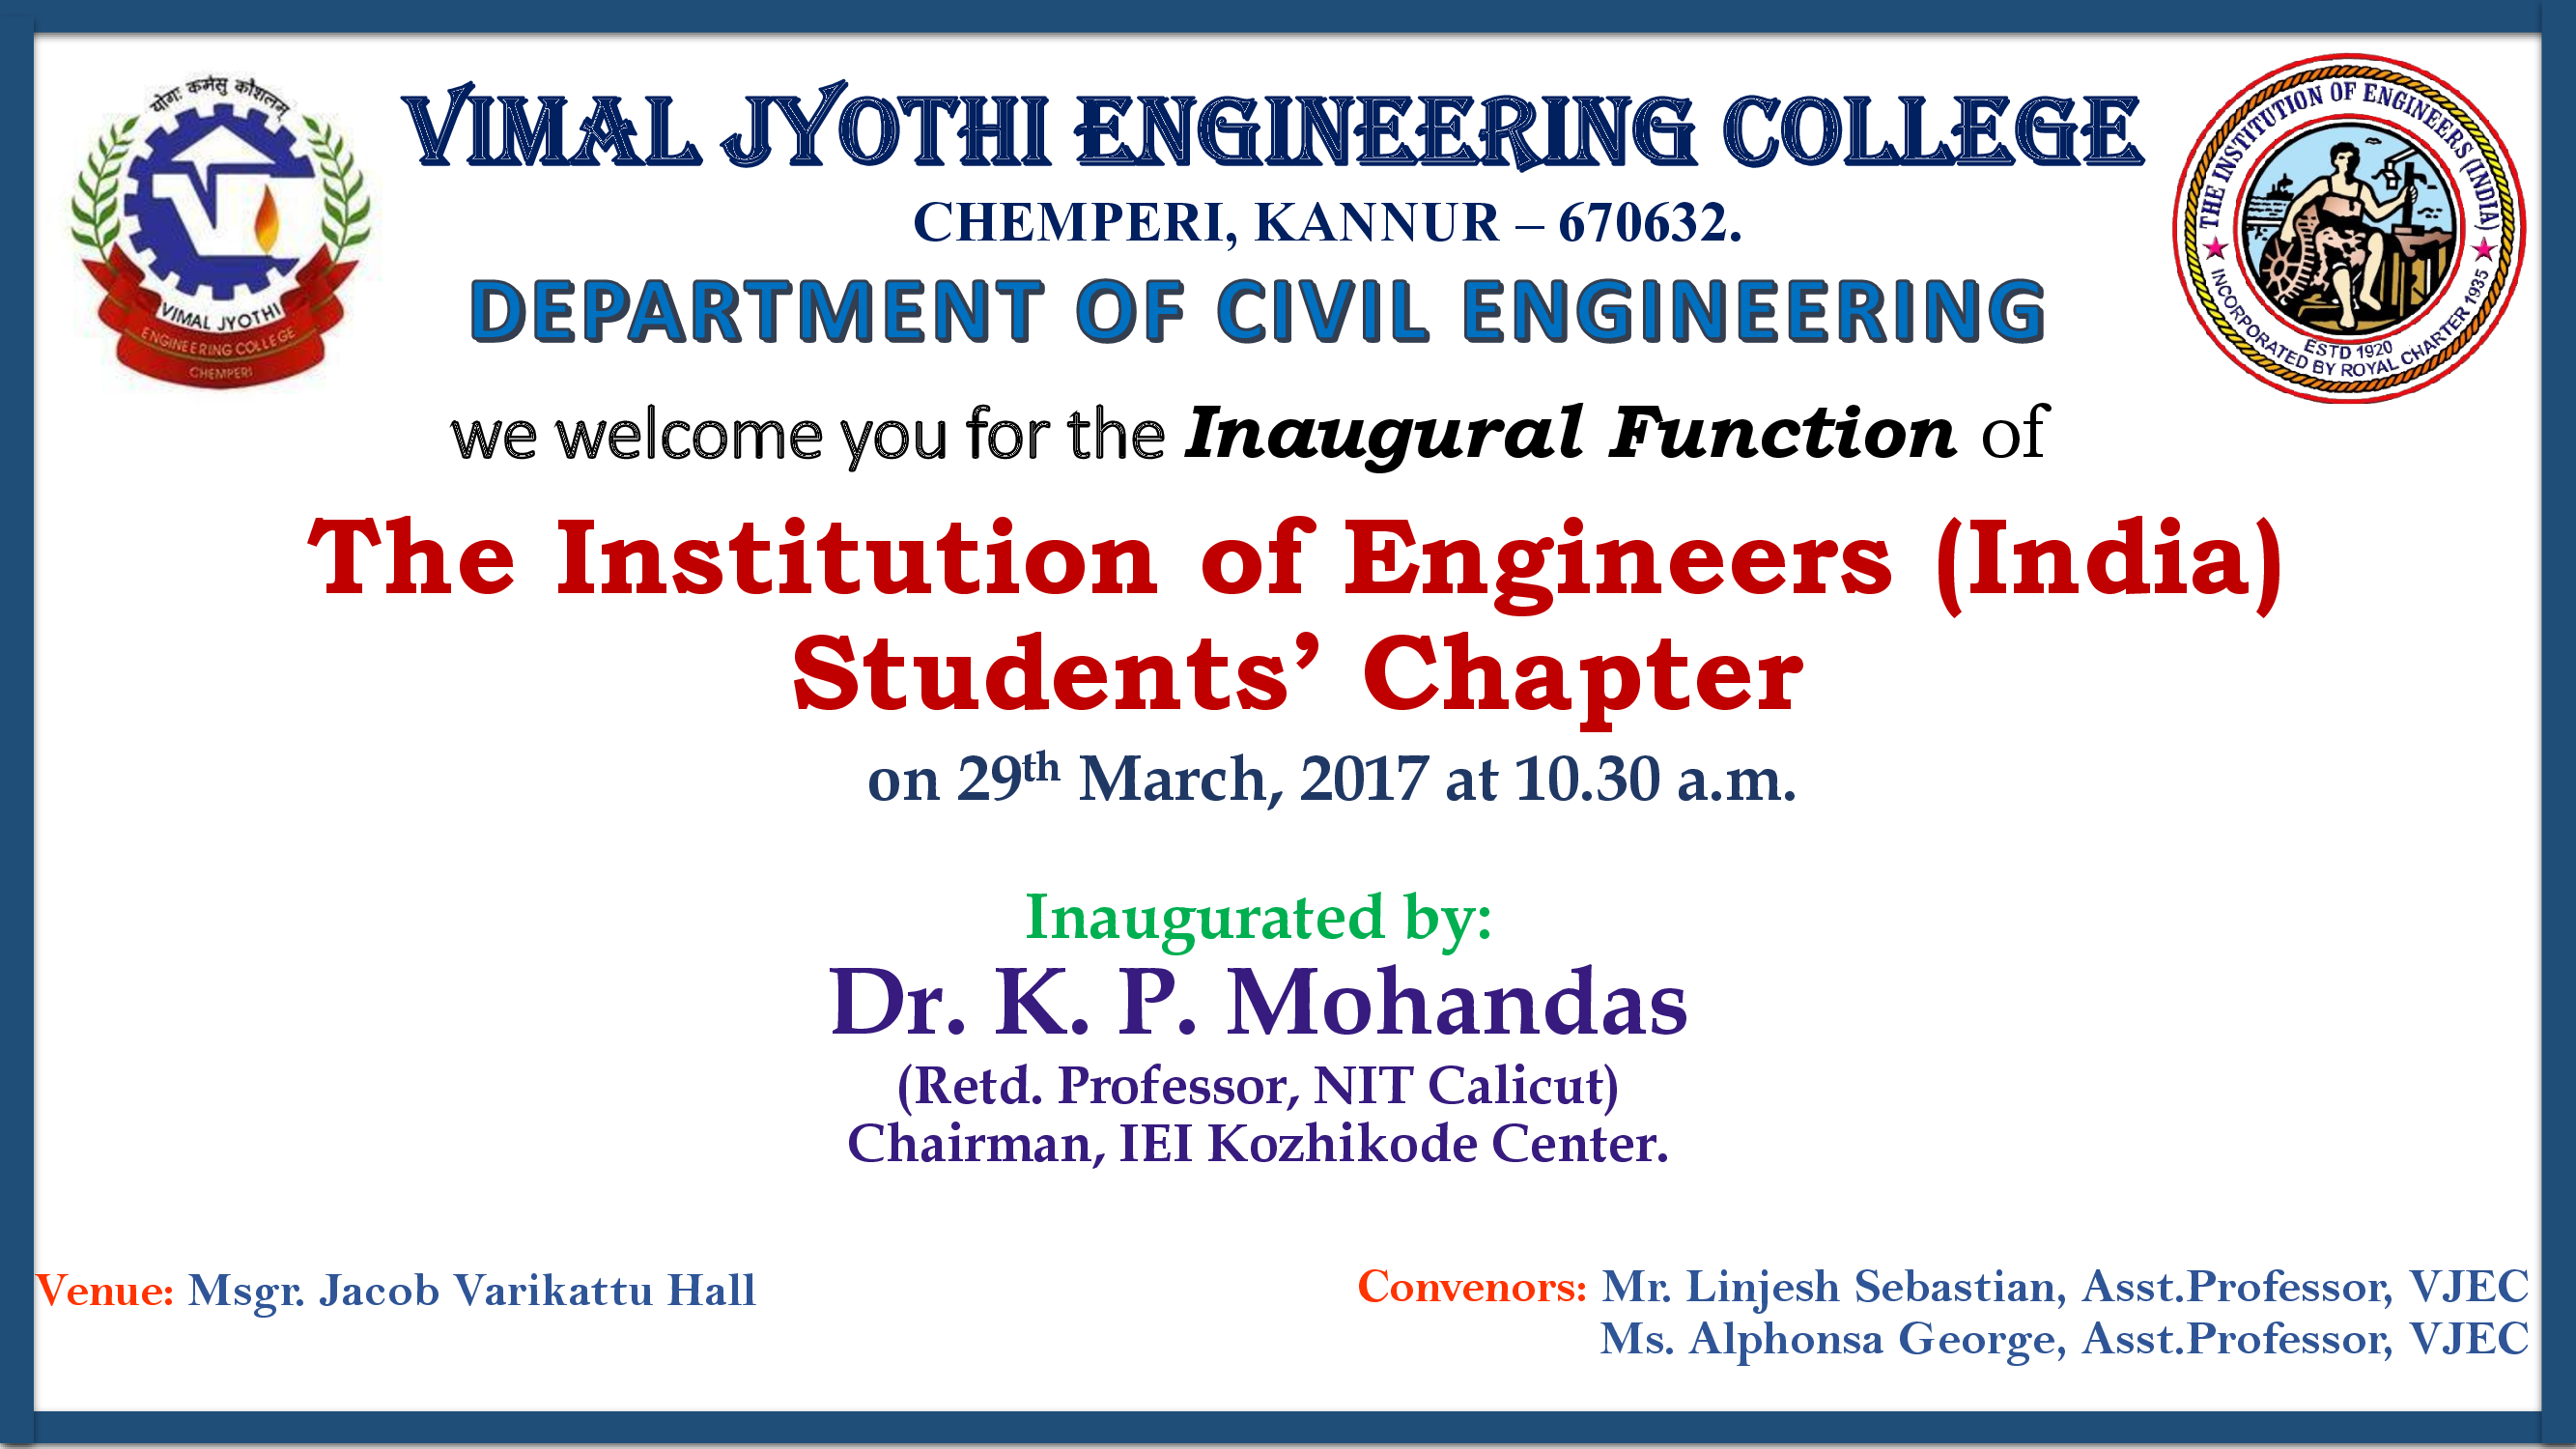 Invitation - Inaugural function of Institution of Engineers (India) Students Chapter